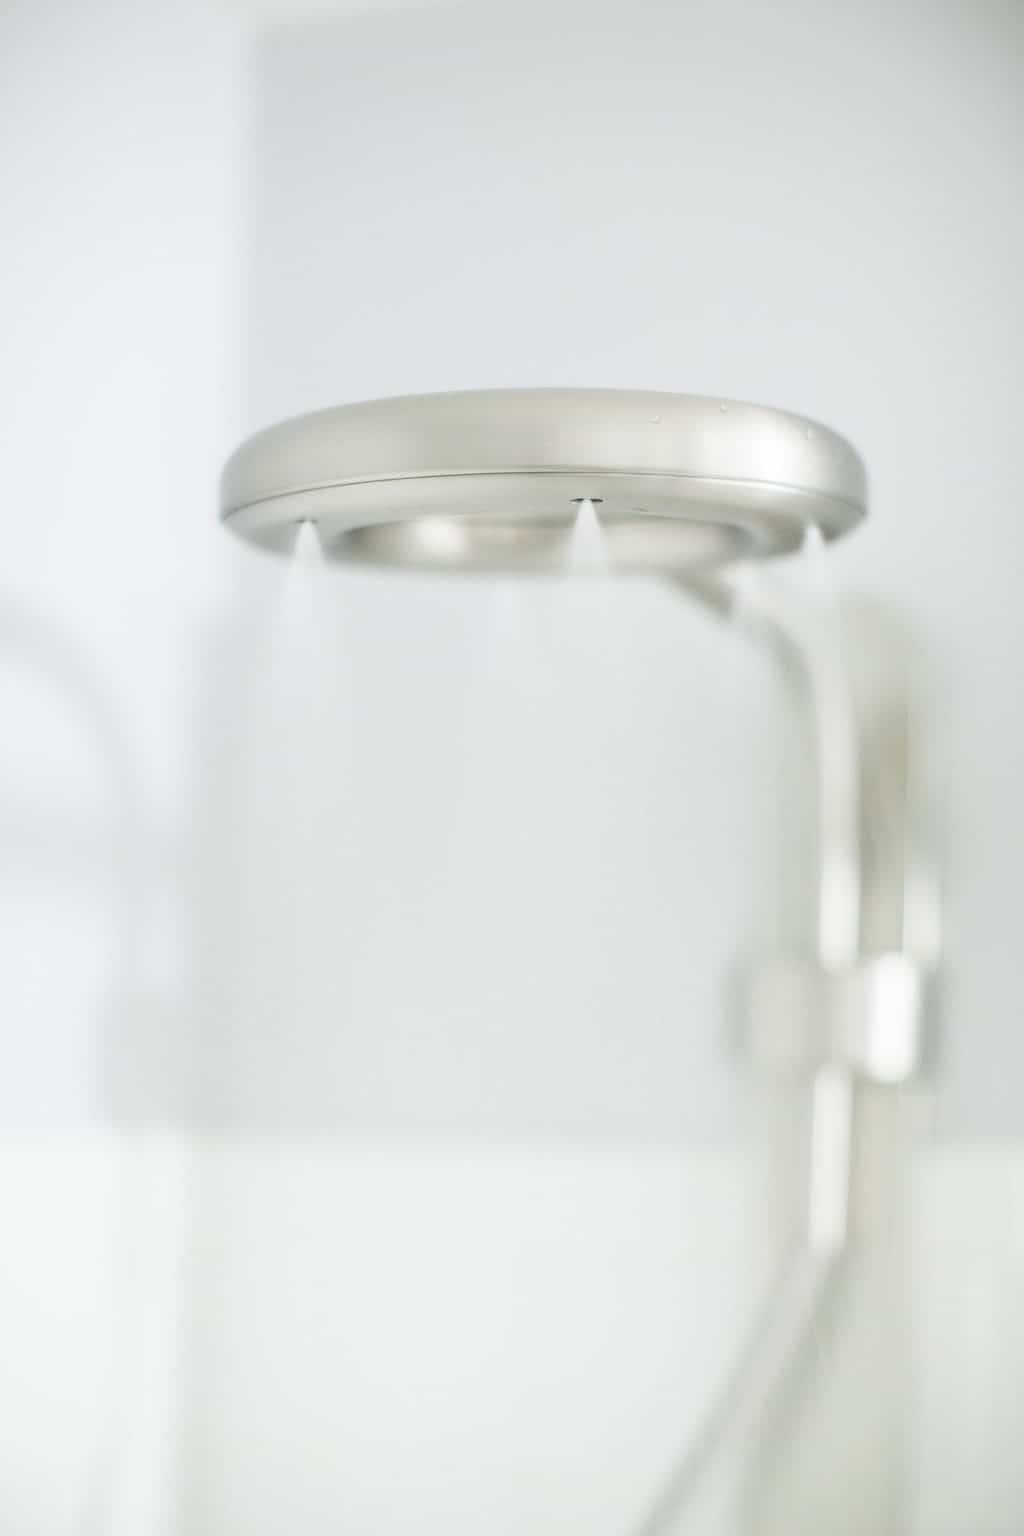 Nebia by Moen Spa Shower review